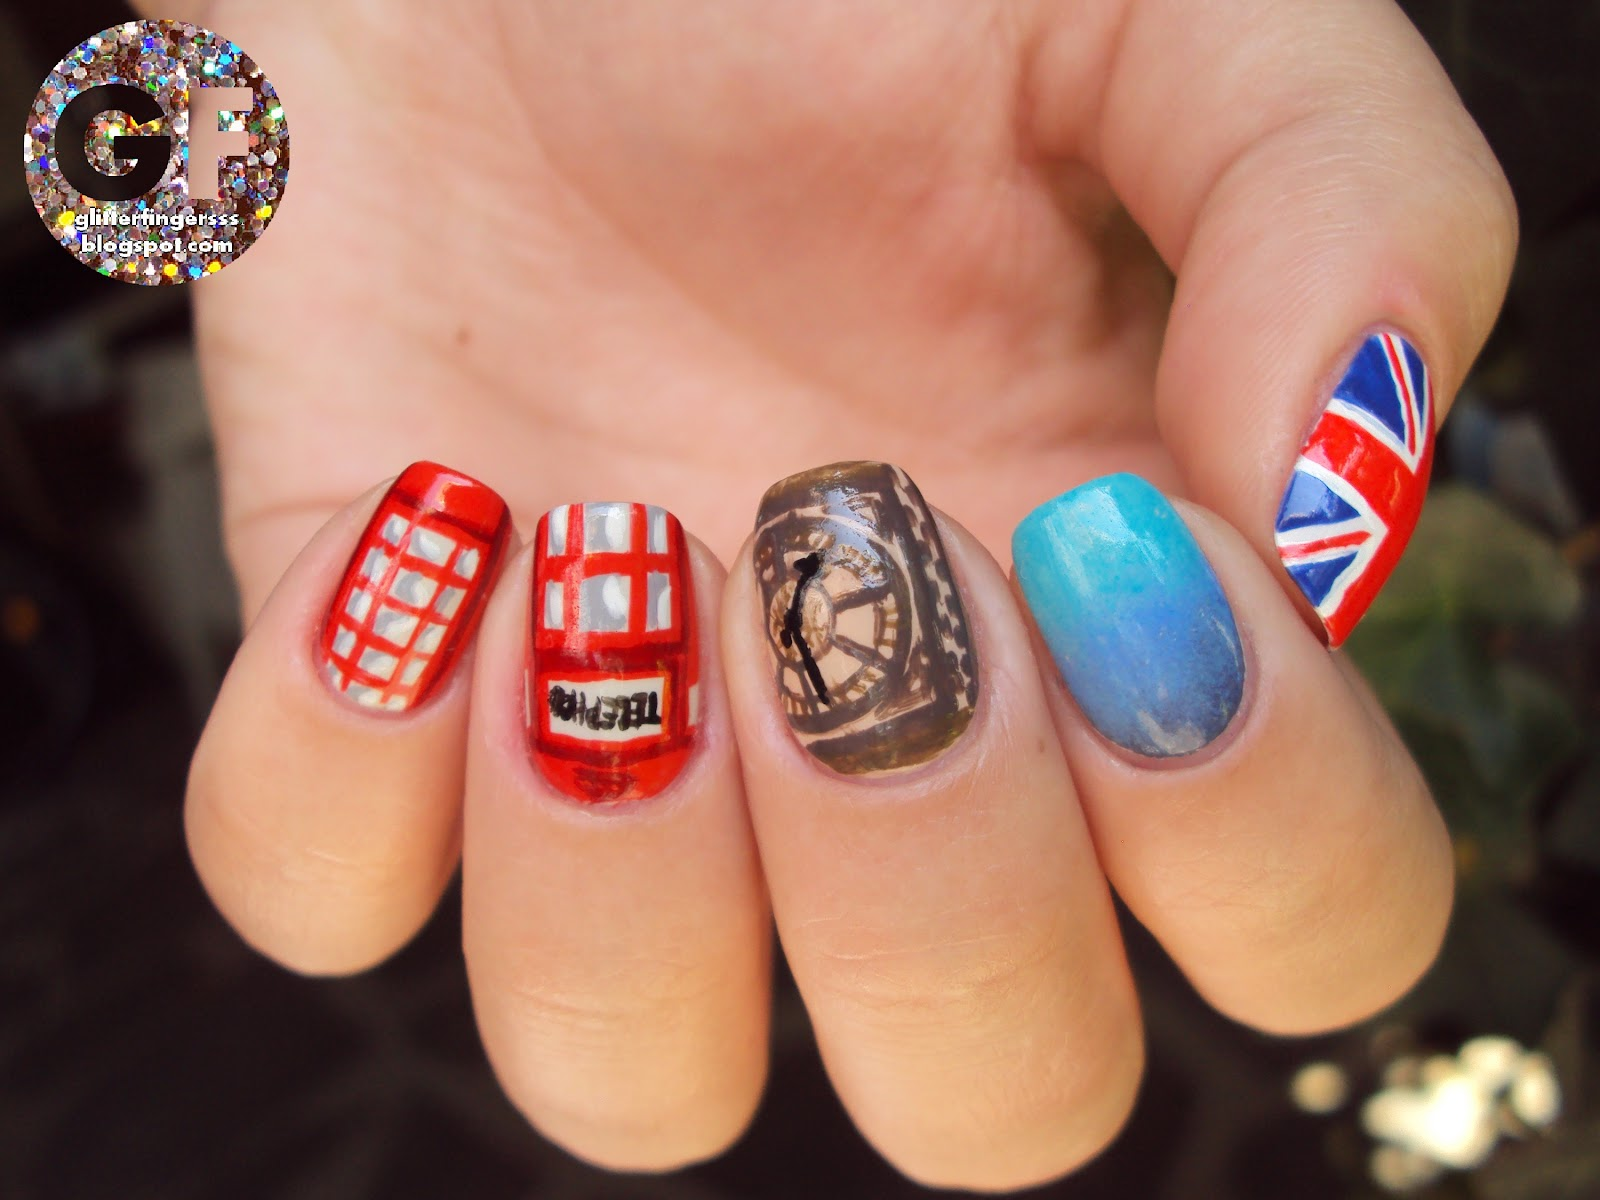 Nail art london glitterfingersss in english all of my nails were handpainted with nail polishes and black acrylic paint prinsesfo Gallery